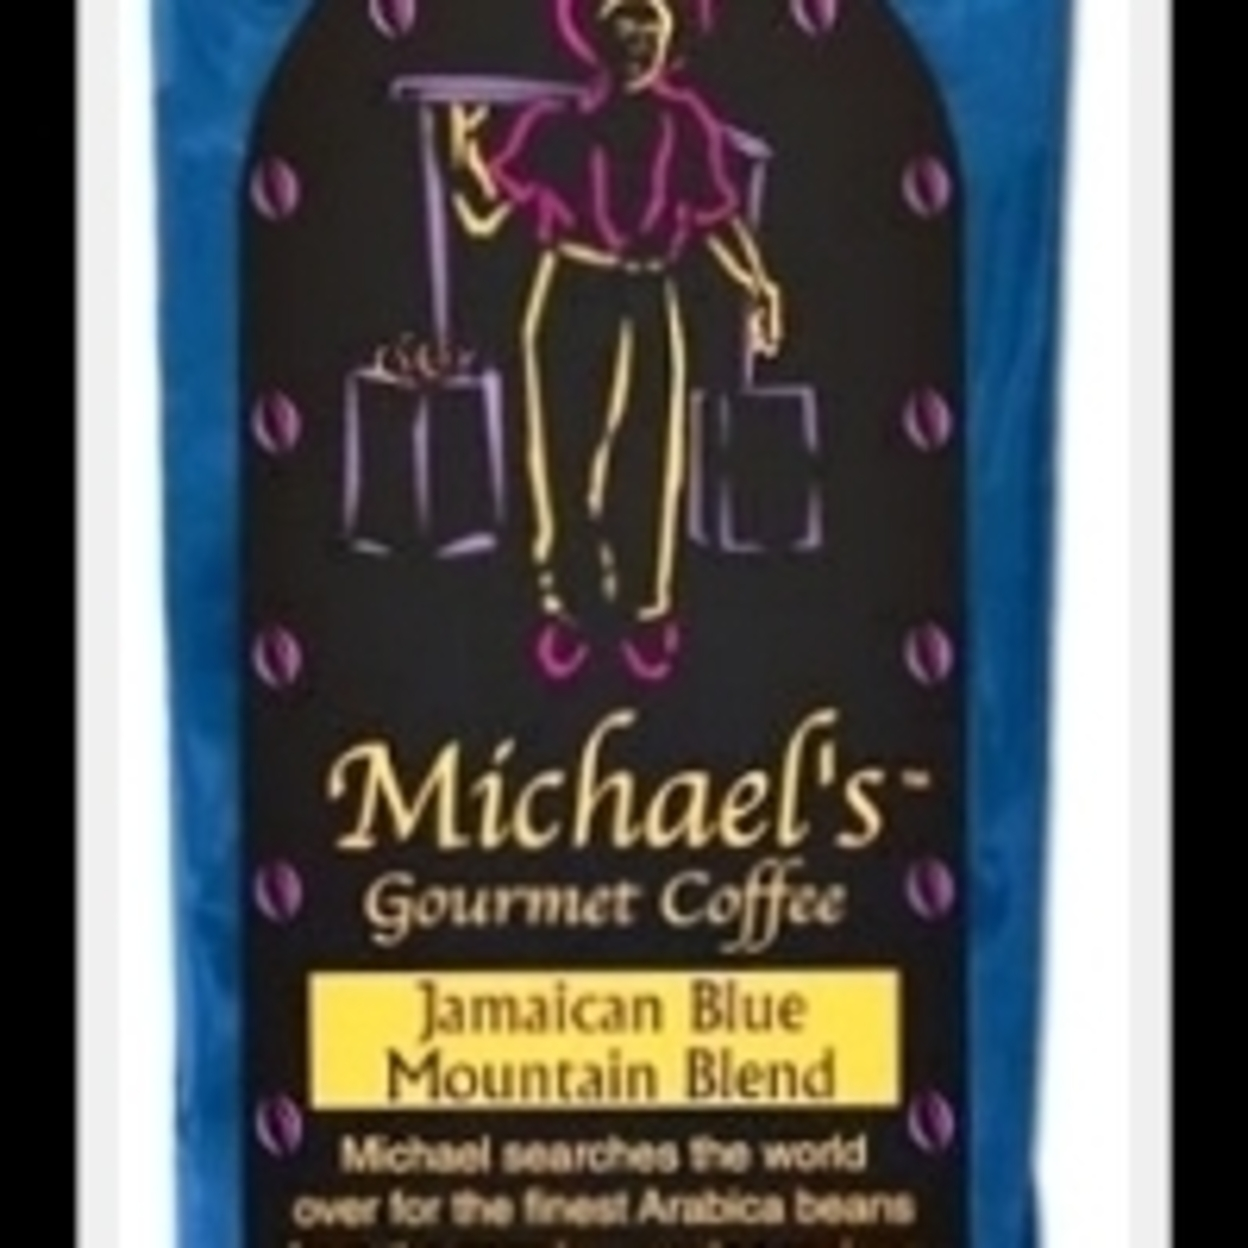 Michaels Coffee 10002 Blue Mountain Blend Flavored Coffee, 16 Oz. -Pack of 3 5a401cff2a00e463260a8a7a